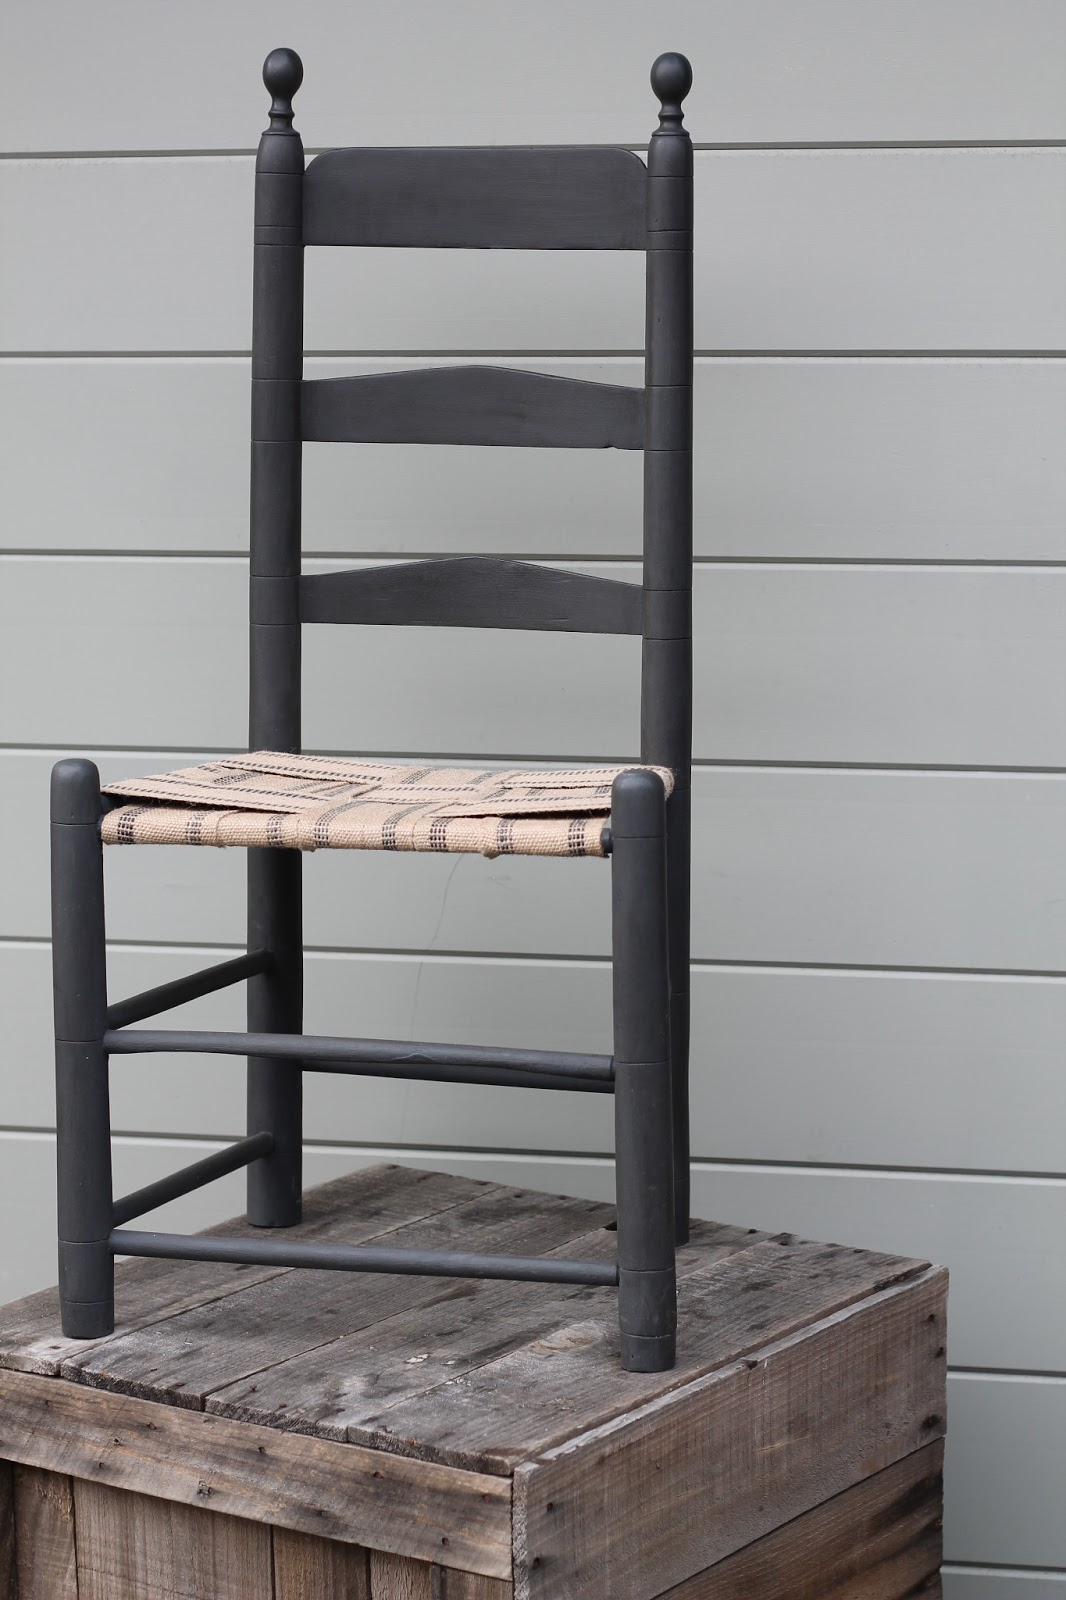 Merveilleux The Seat On This Solid Wood, Well Made Ladder Back Chair Had A Tattered  Rush Seat When We Found It. We Removed The Rush, Painted The Chair Black,  Used A ...